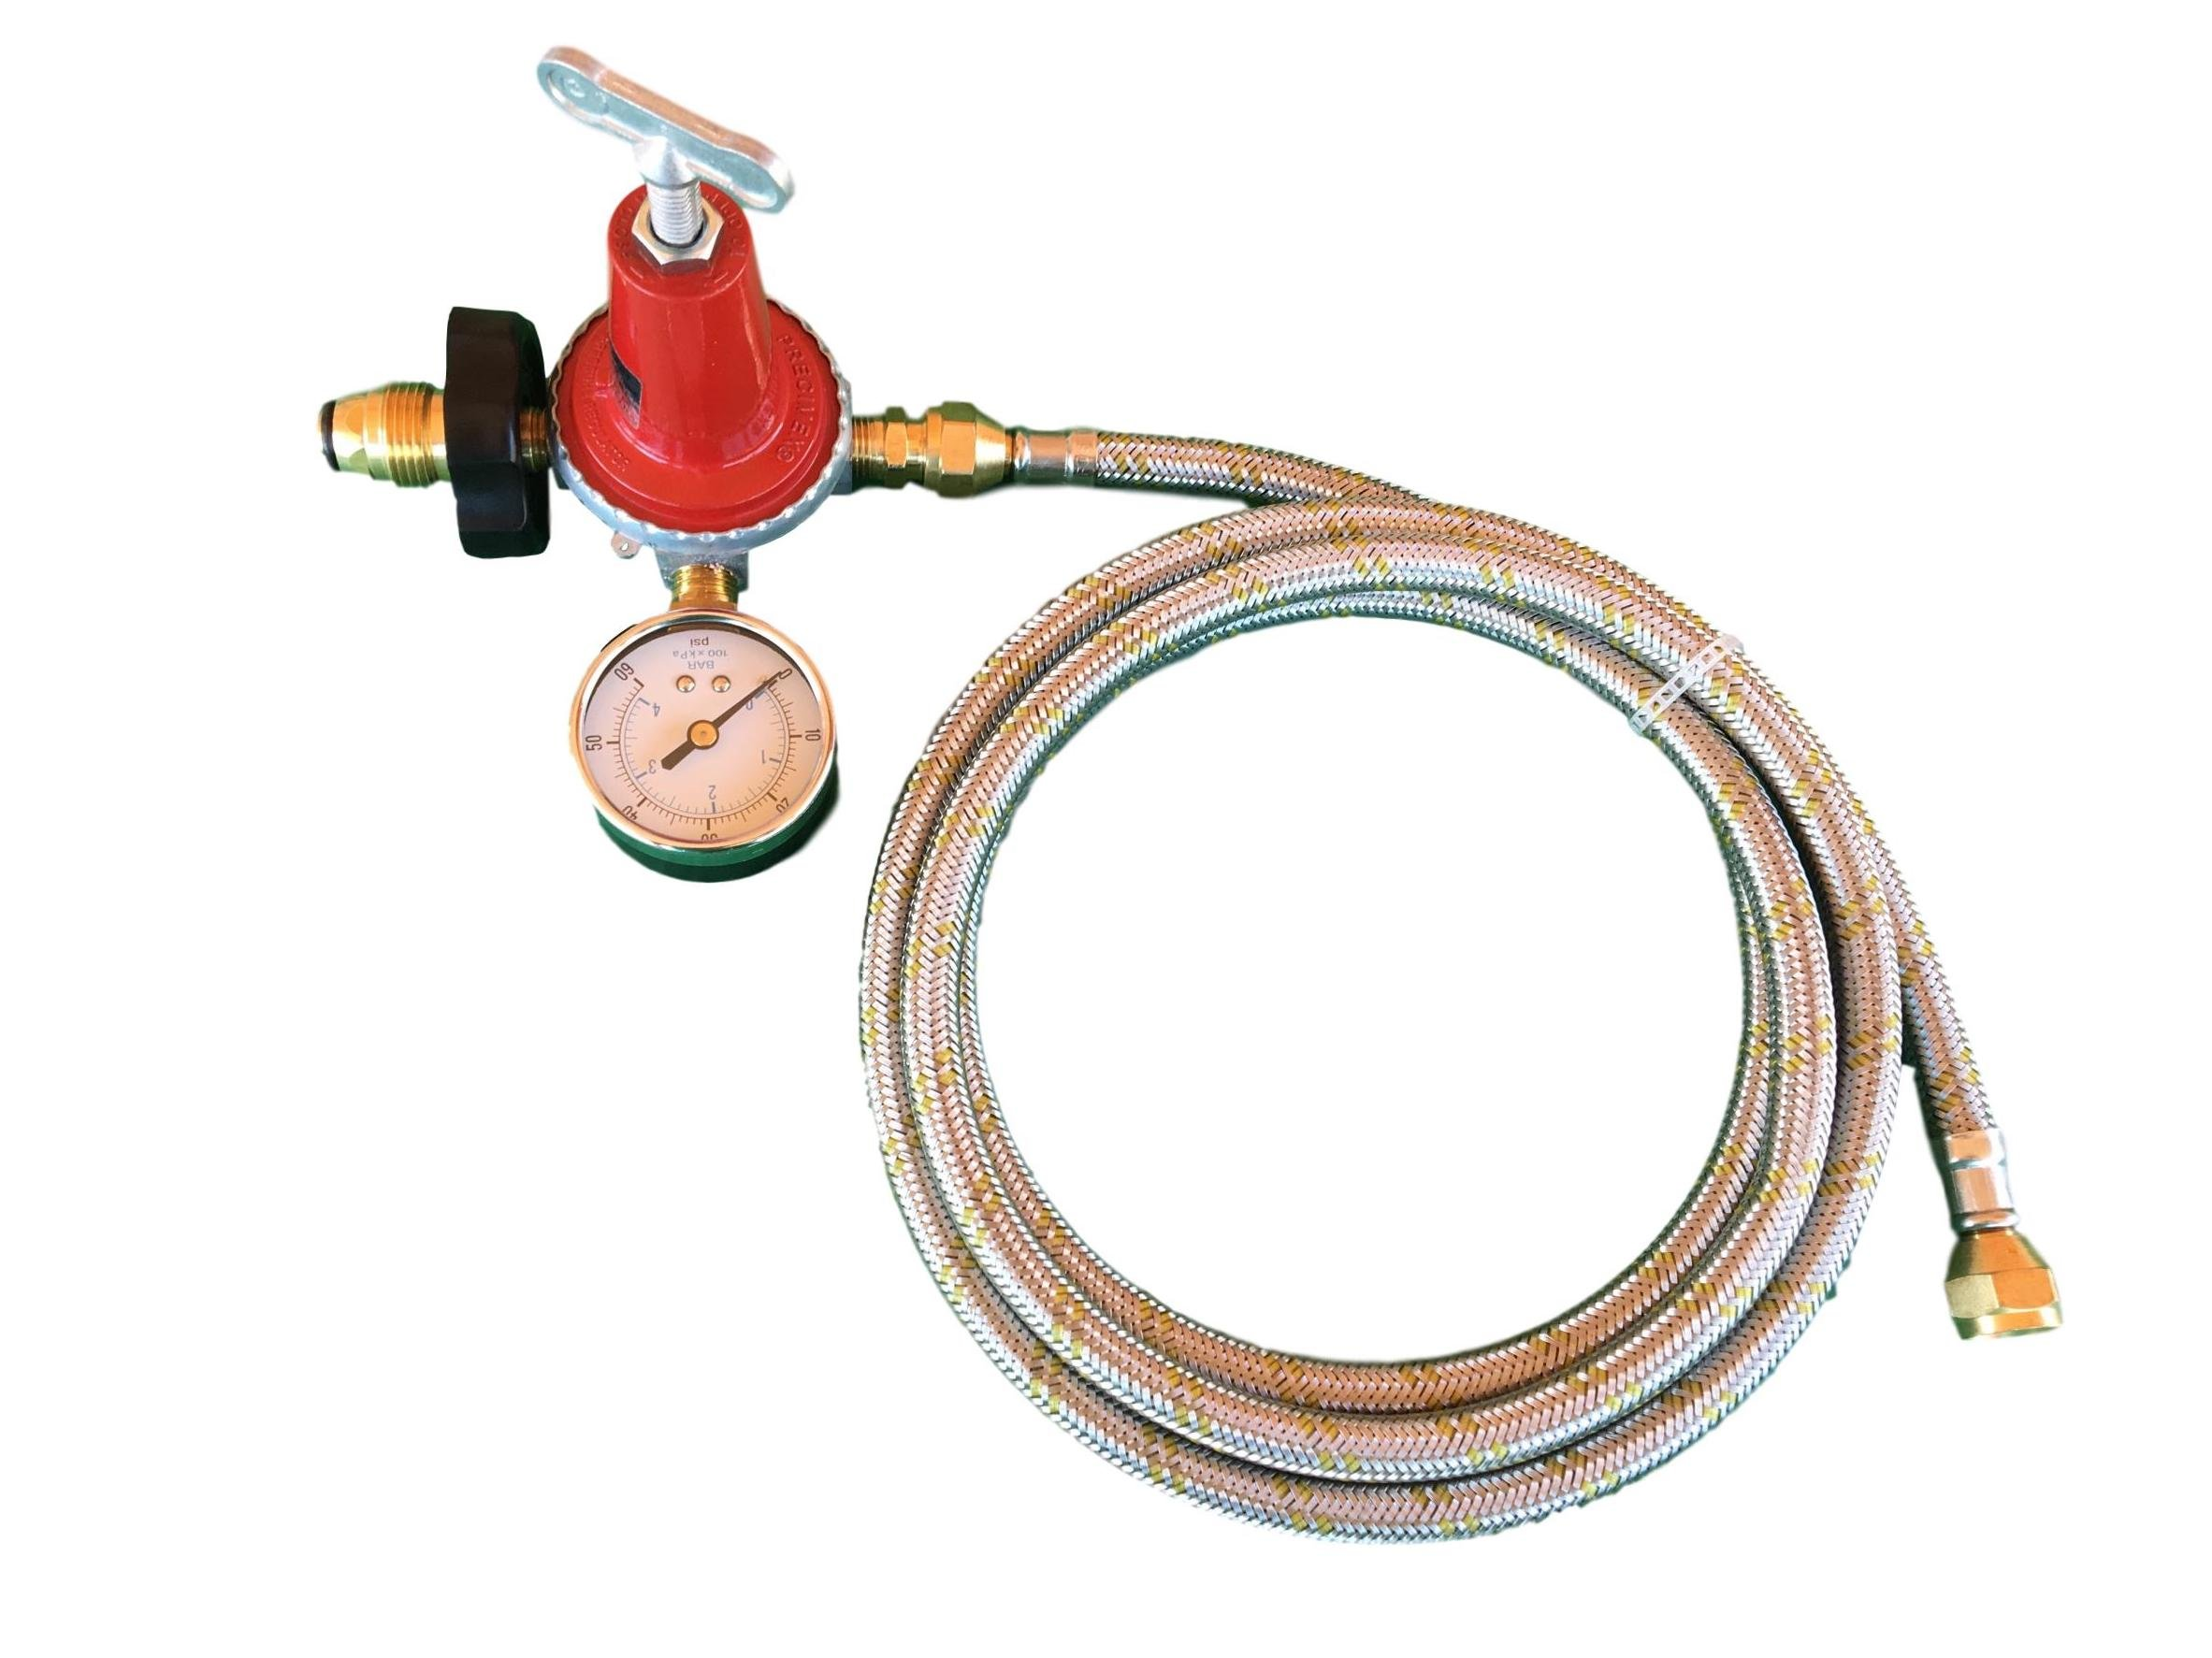 Adjustable 0 to 40psi Propane Regulator Soft POL LP Gas Gauge and 12ft Stainless Steel Hose